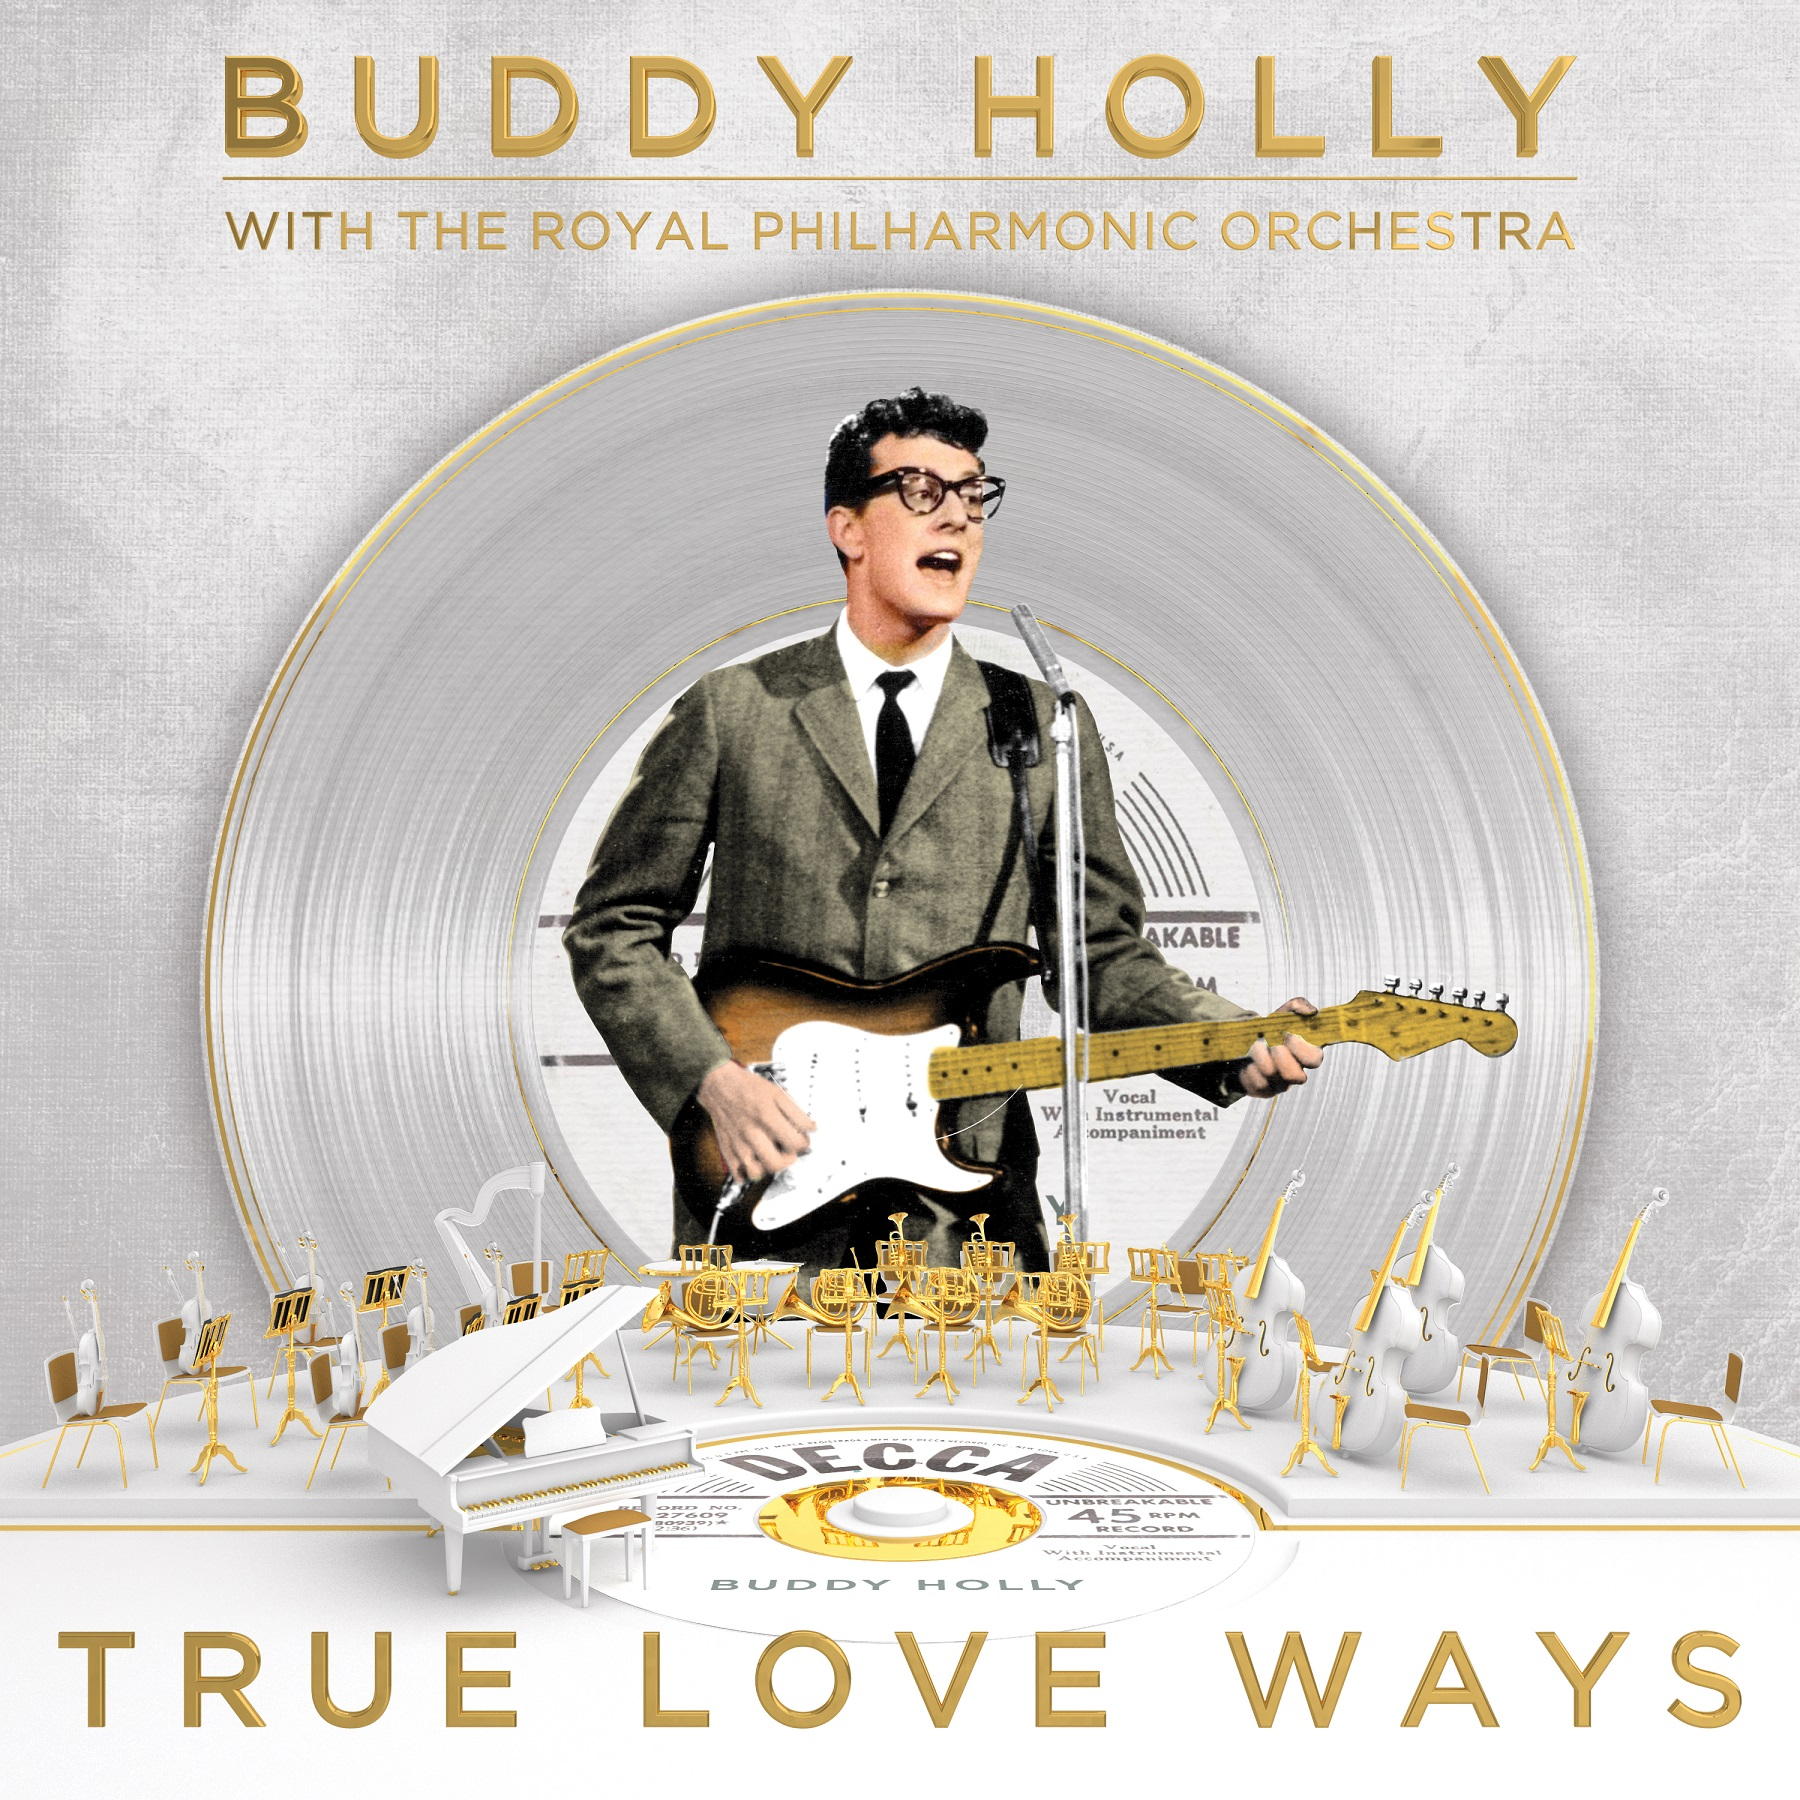 The Royal Philharmonic Orchestra Goes To The Bathroom: Buddy Holly Meets The Royal Philharmonic Orchestra